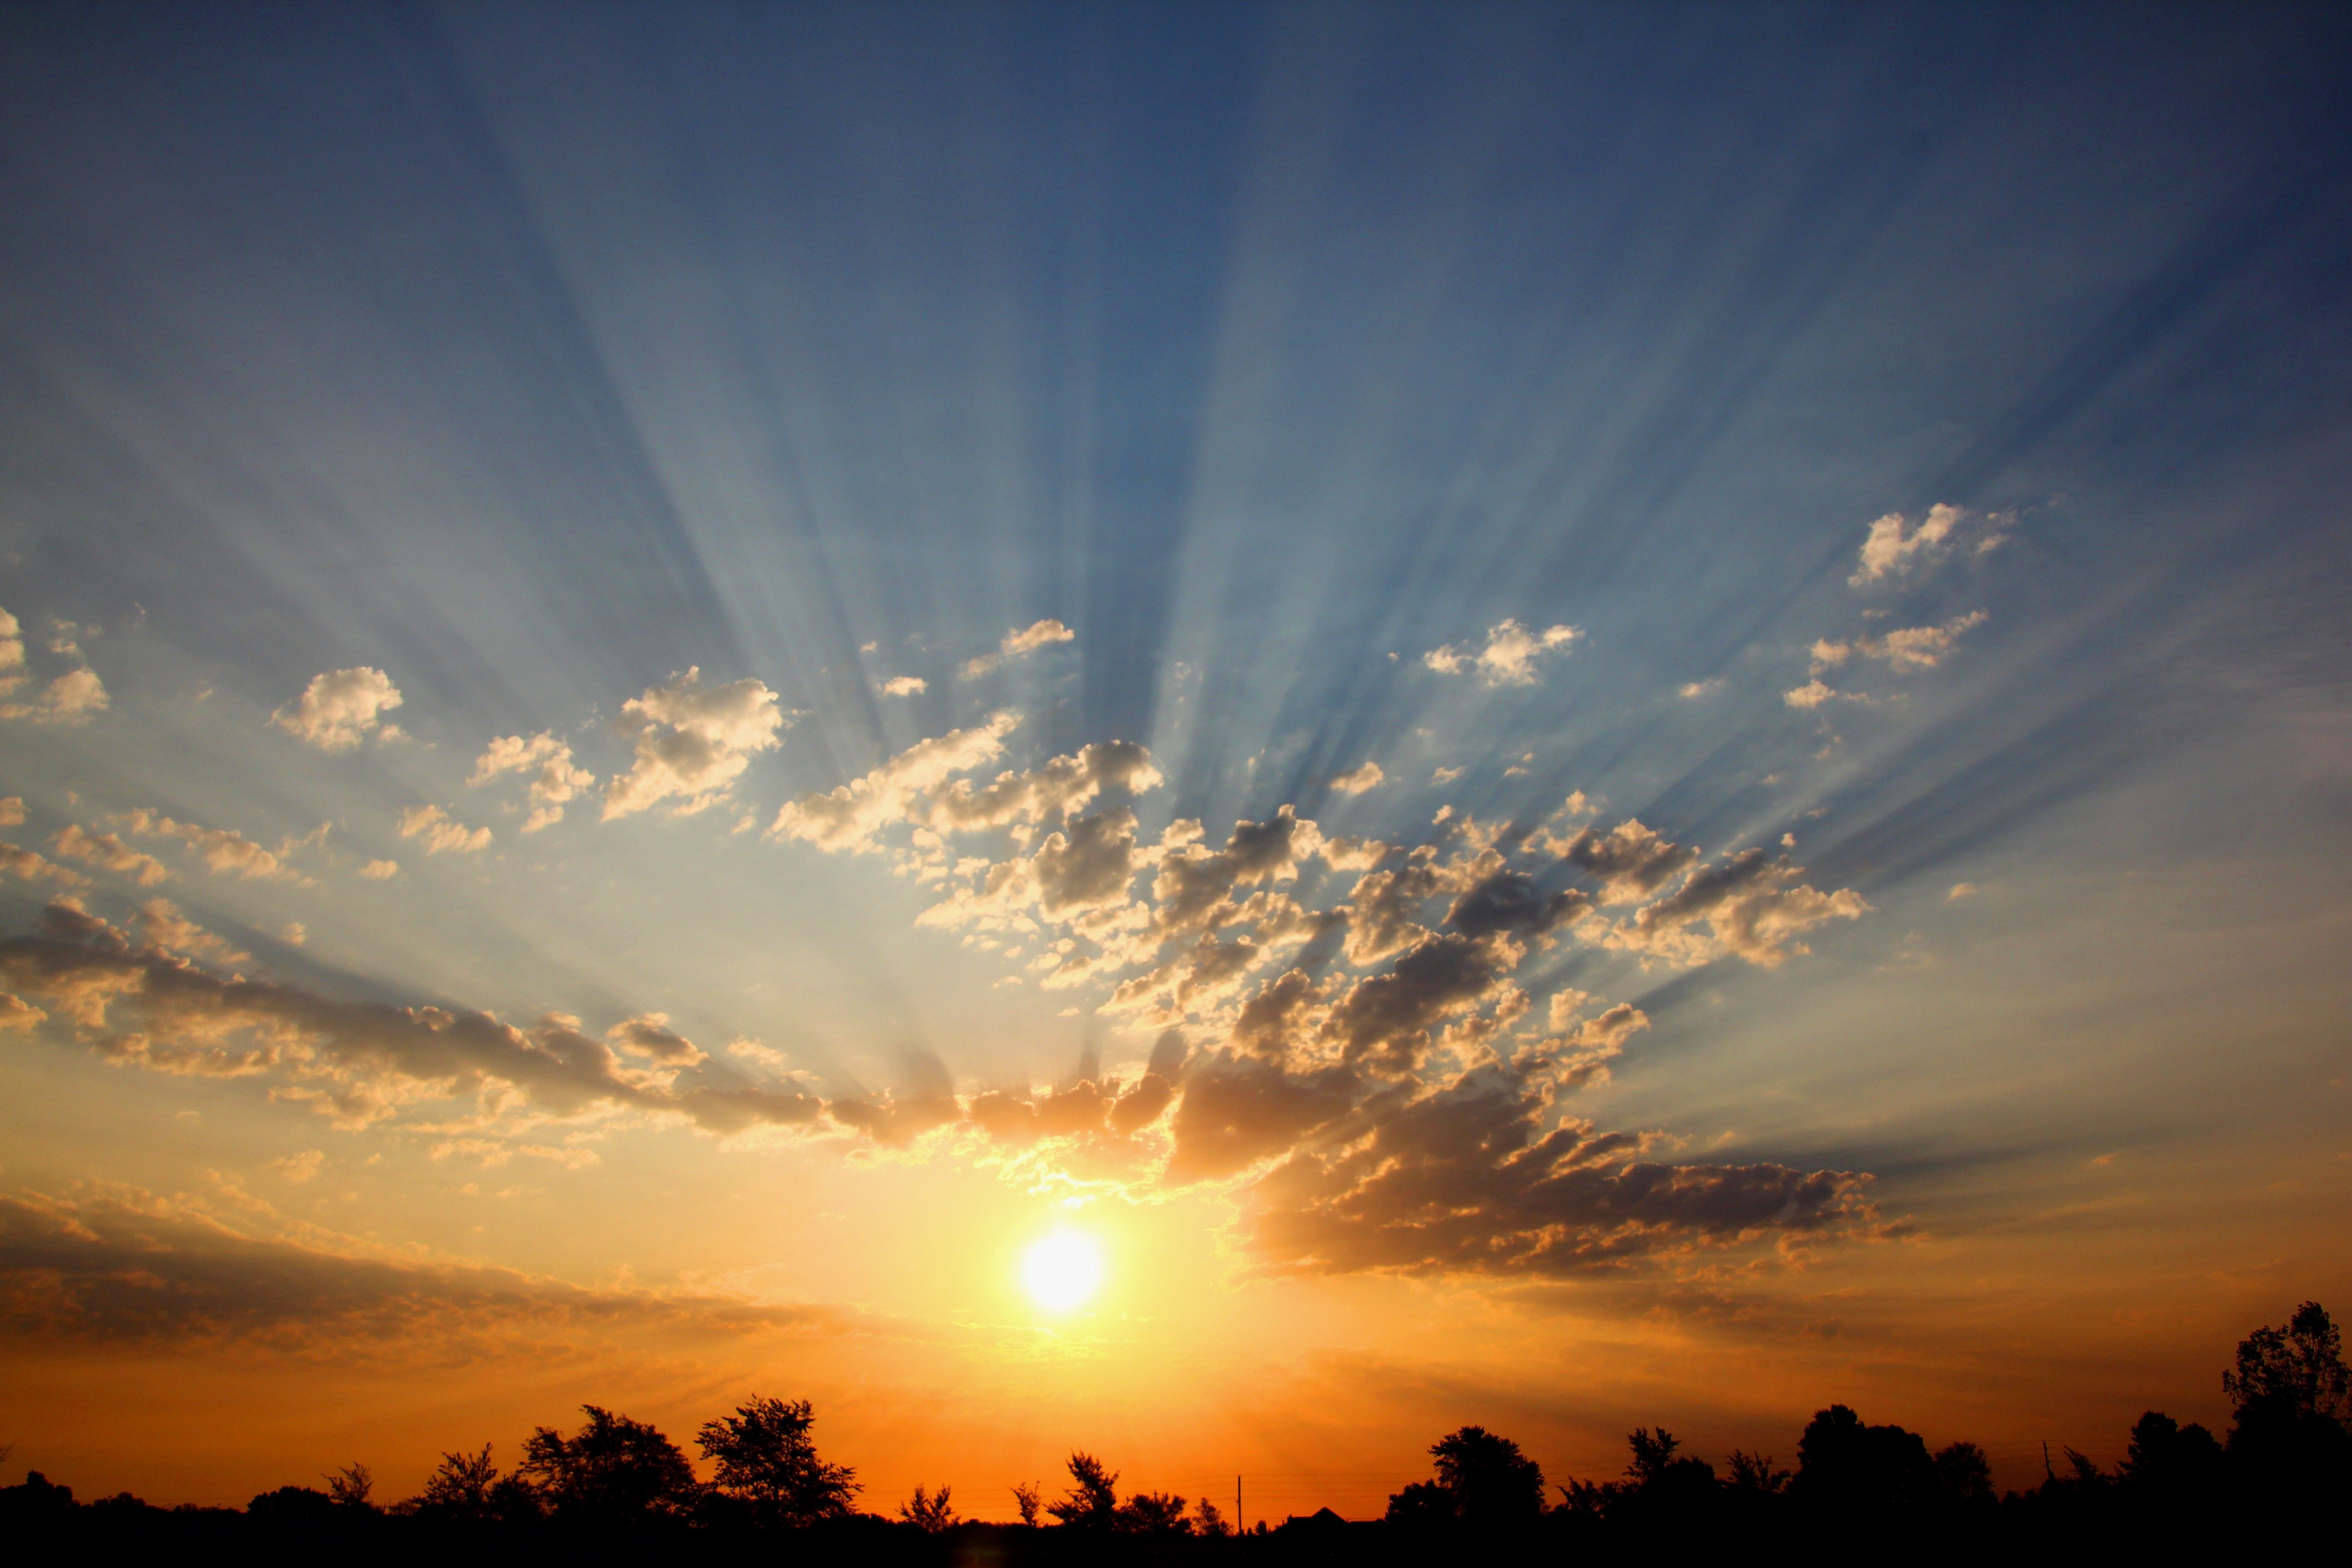 The sun rises in the sky, radiating long rays.